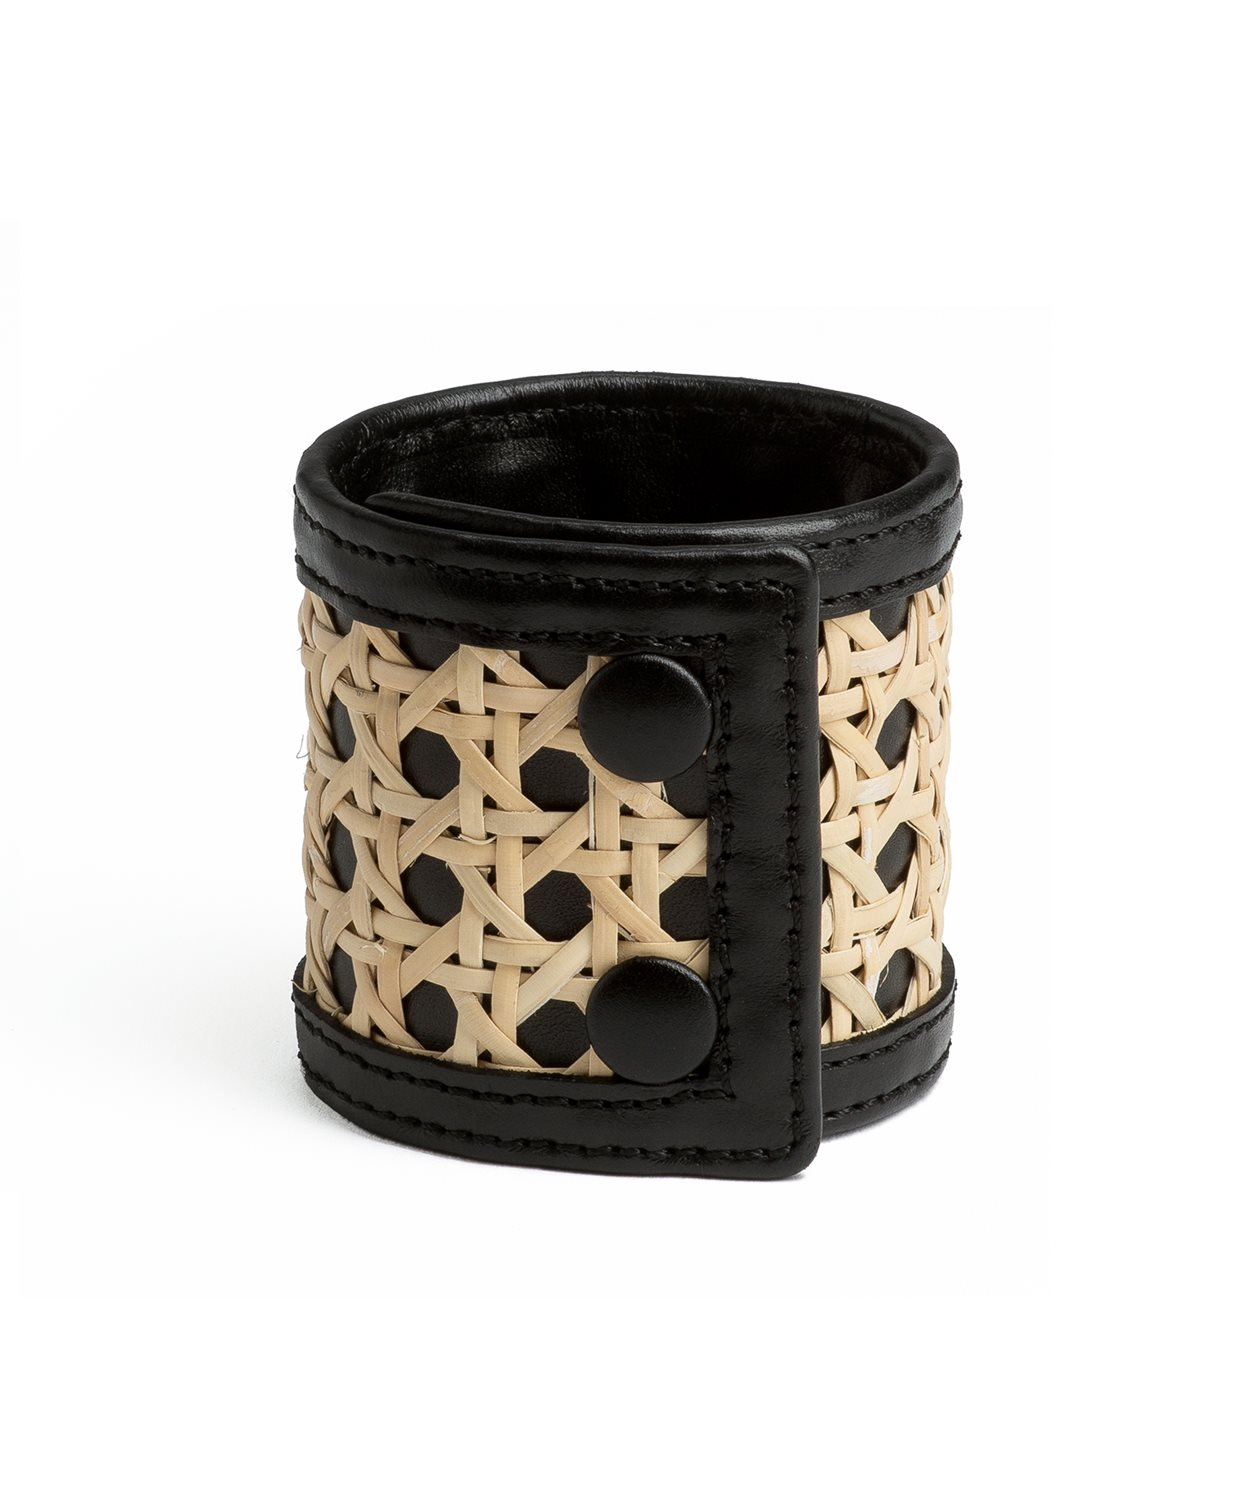 Palmgrens - Armband Rotting Svart - Genuine handcrafted leather ... e84be8111944e